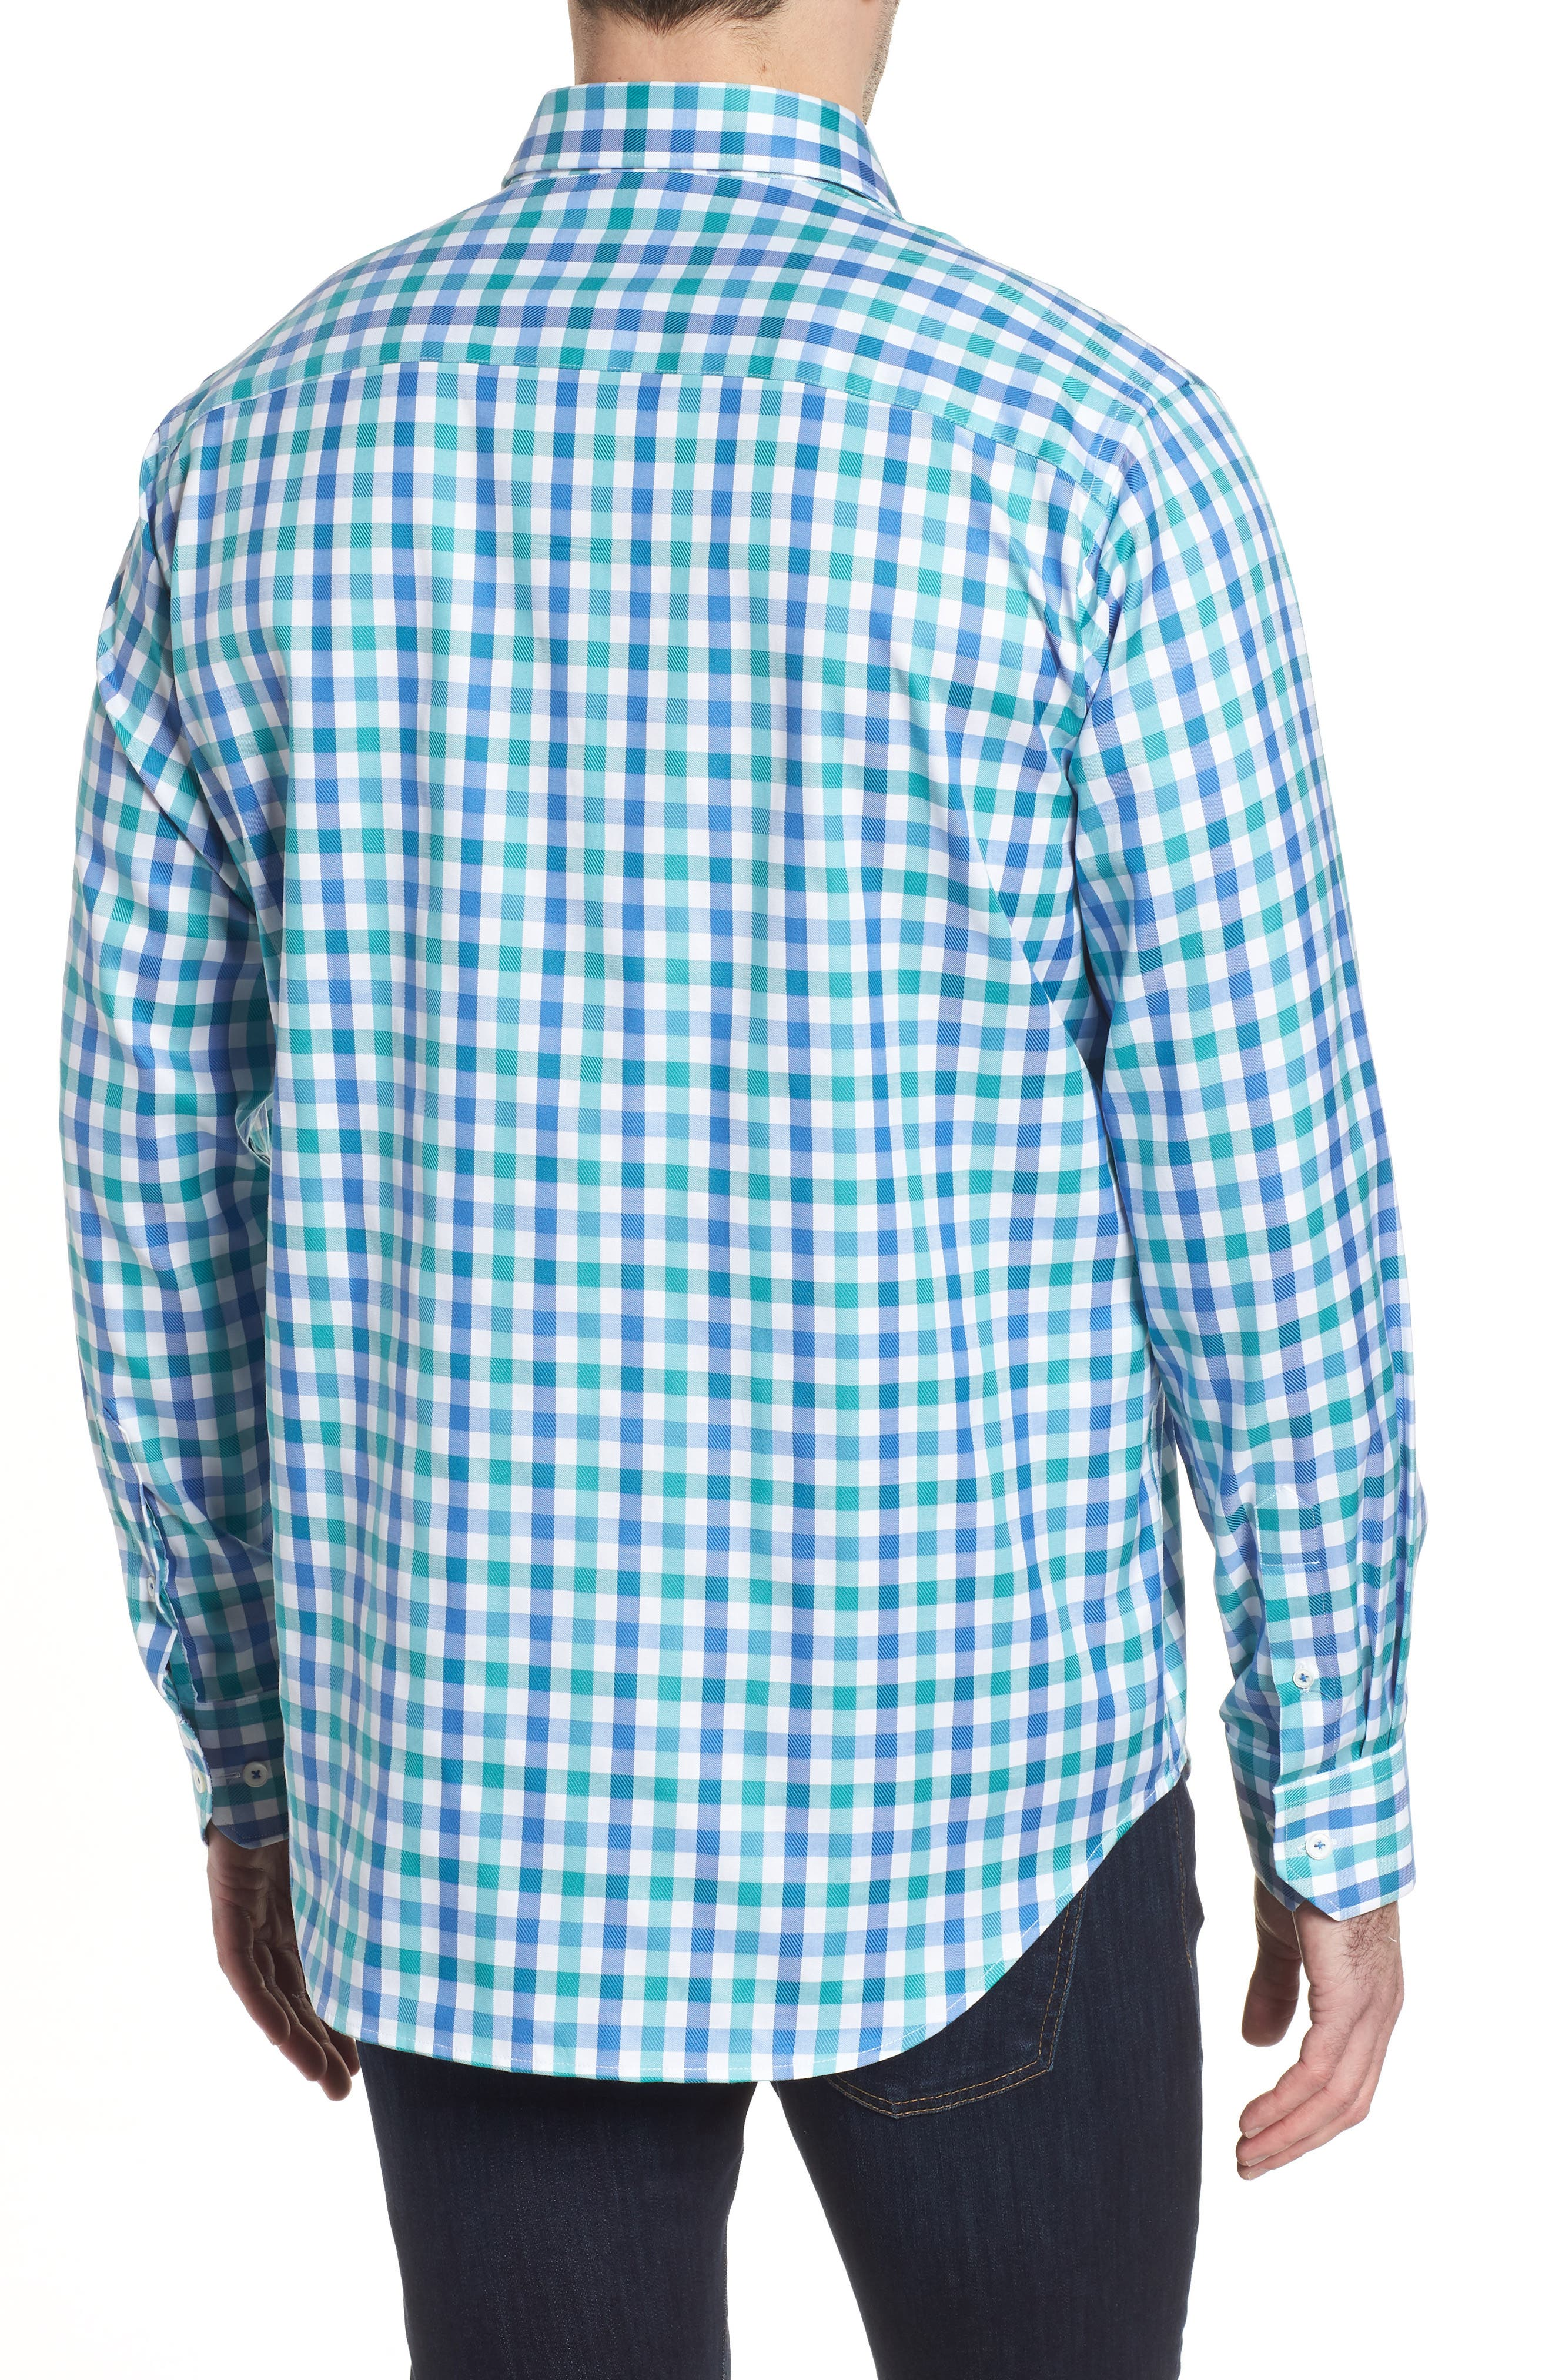 Classic Fit Gingham Check Sport Shirt,                             Alternate thumbnail 2, color,                             313